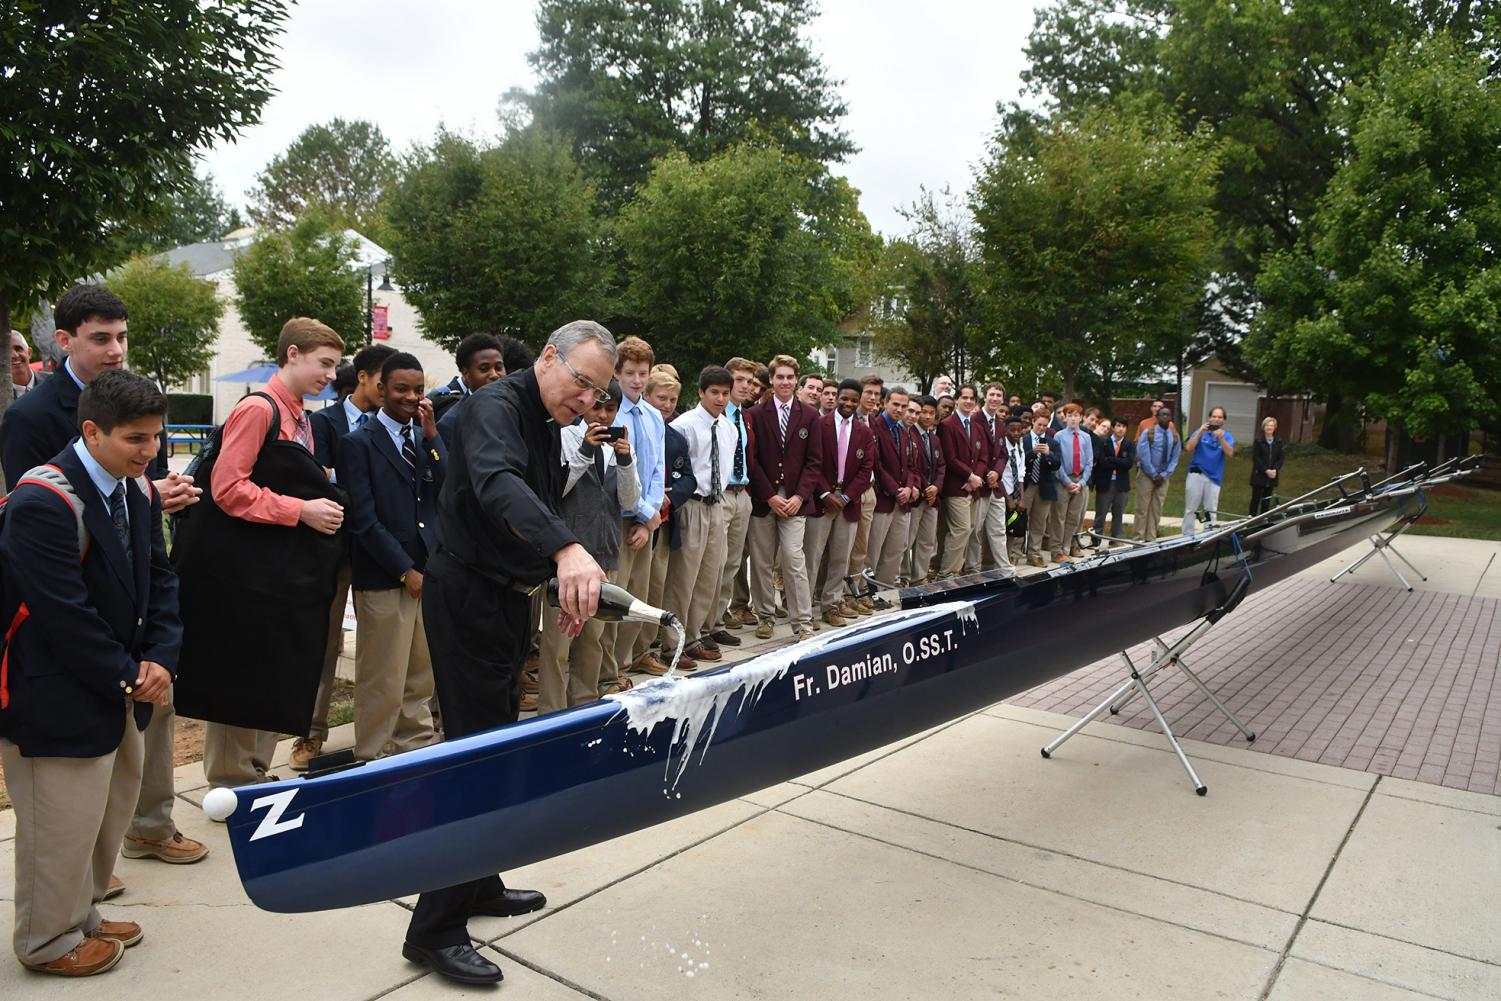 Father Damian christens new crew boat.